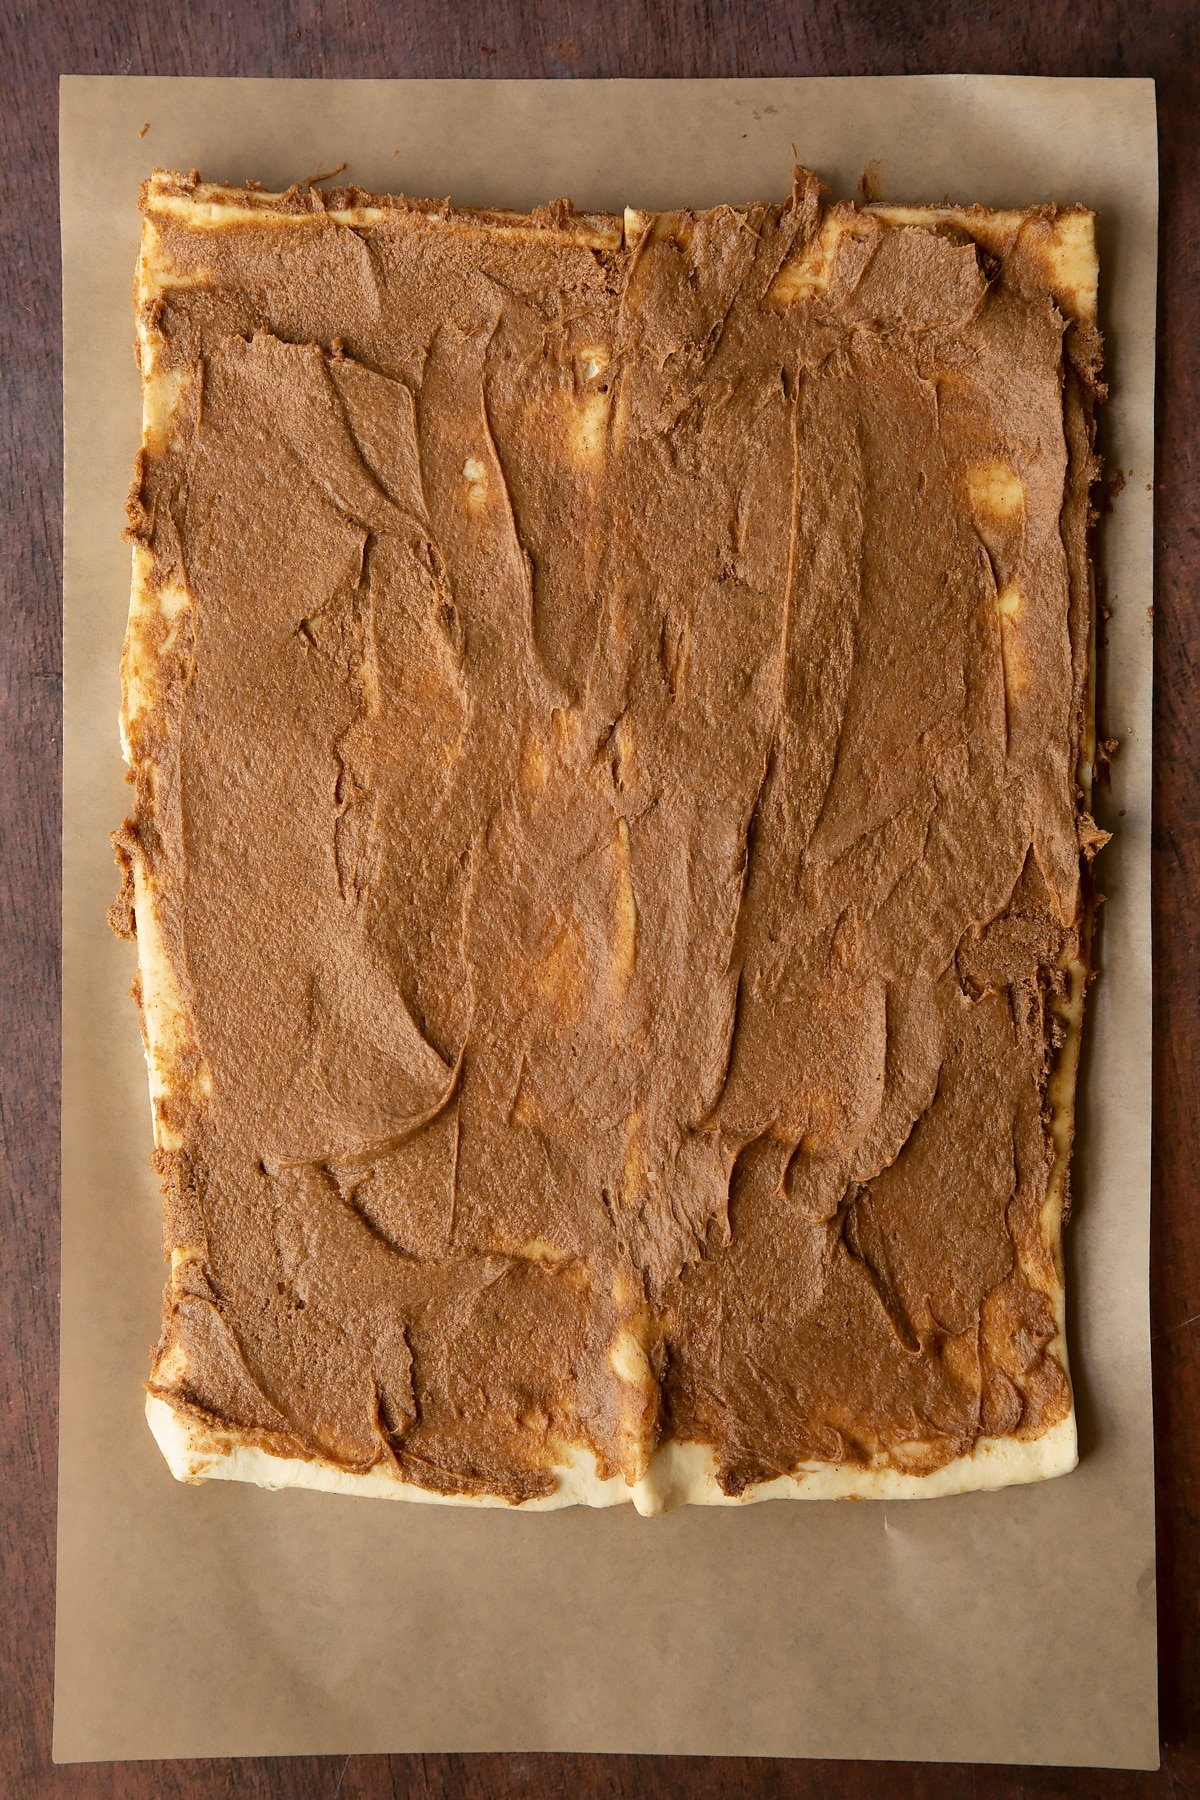 Two strips of unrolled cinnamon swirl dough on a piece of brown baking paper. The cinnamon butter filling is spread evenly.